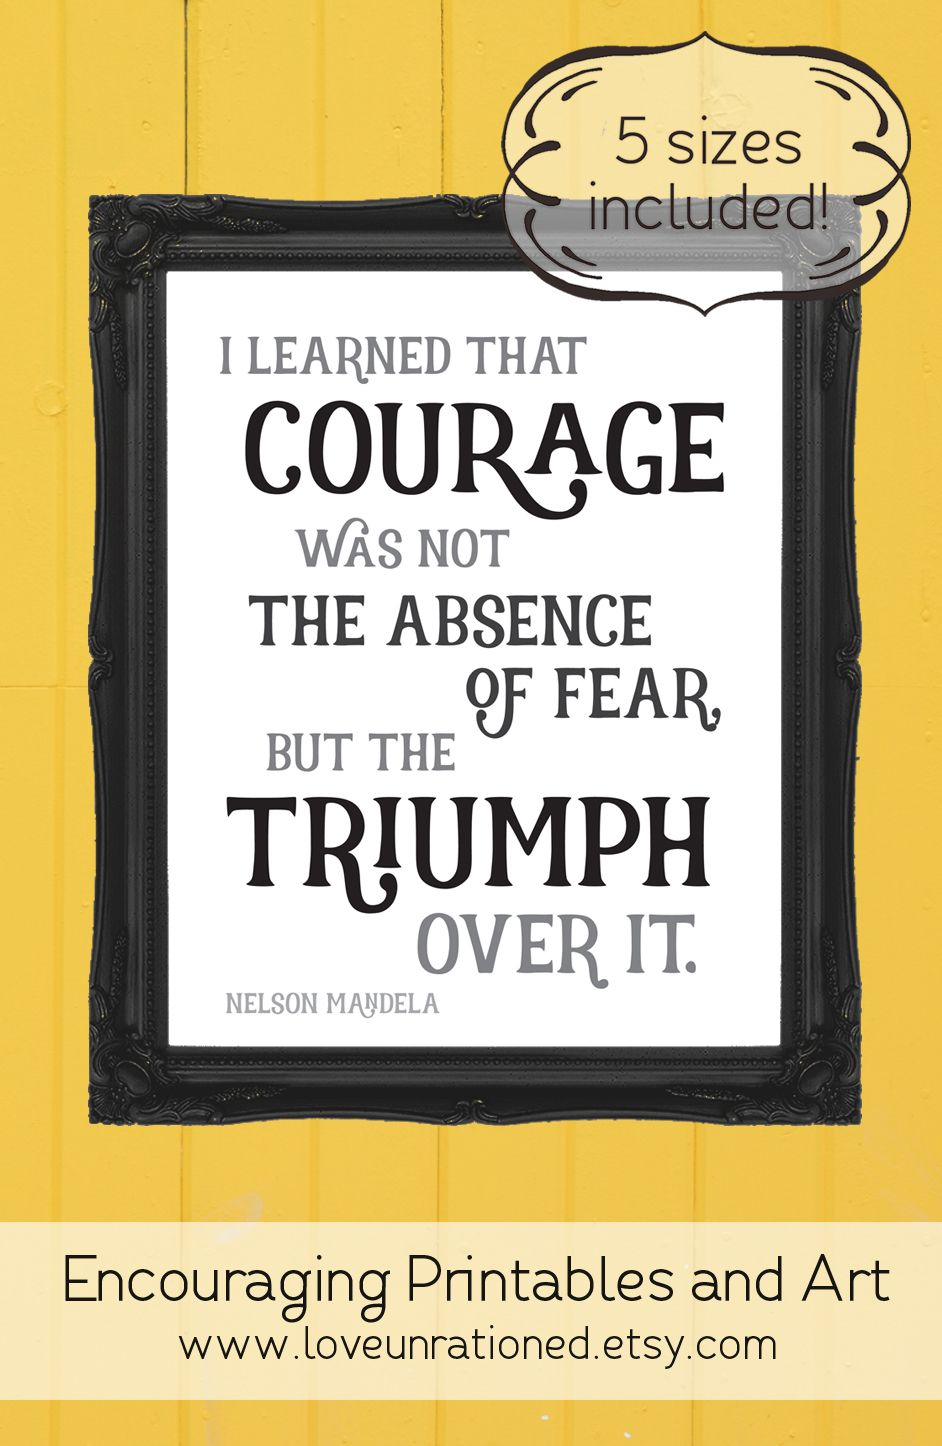 Nelson Mandela, Printable, Inspiring Quote, Courage Quote, Courage  Printable, Inspirational Print, Social Justice, Social Justice Print